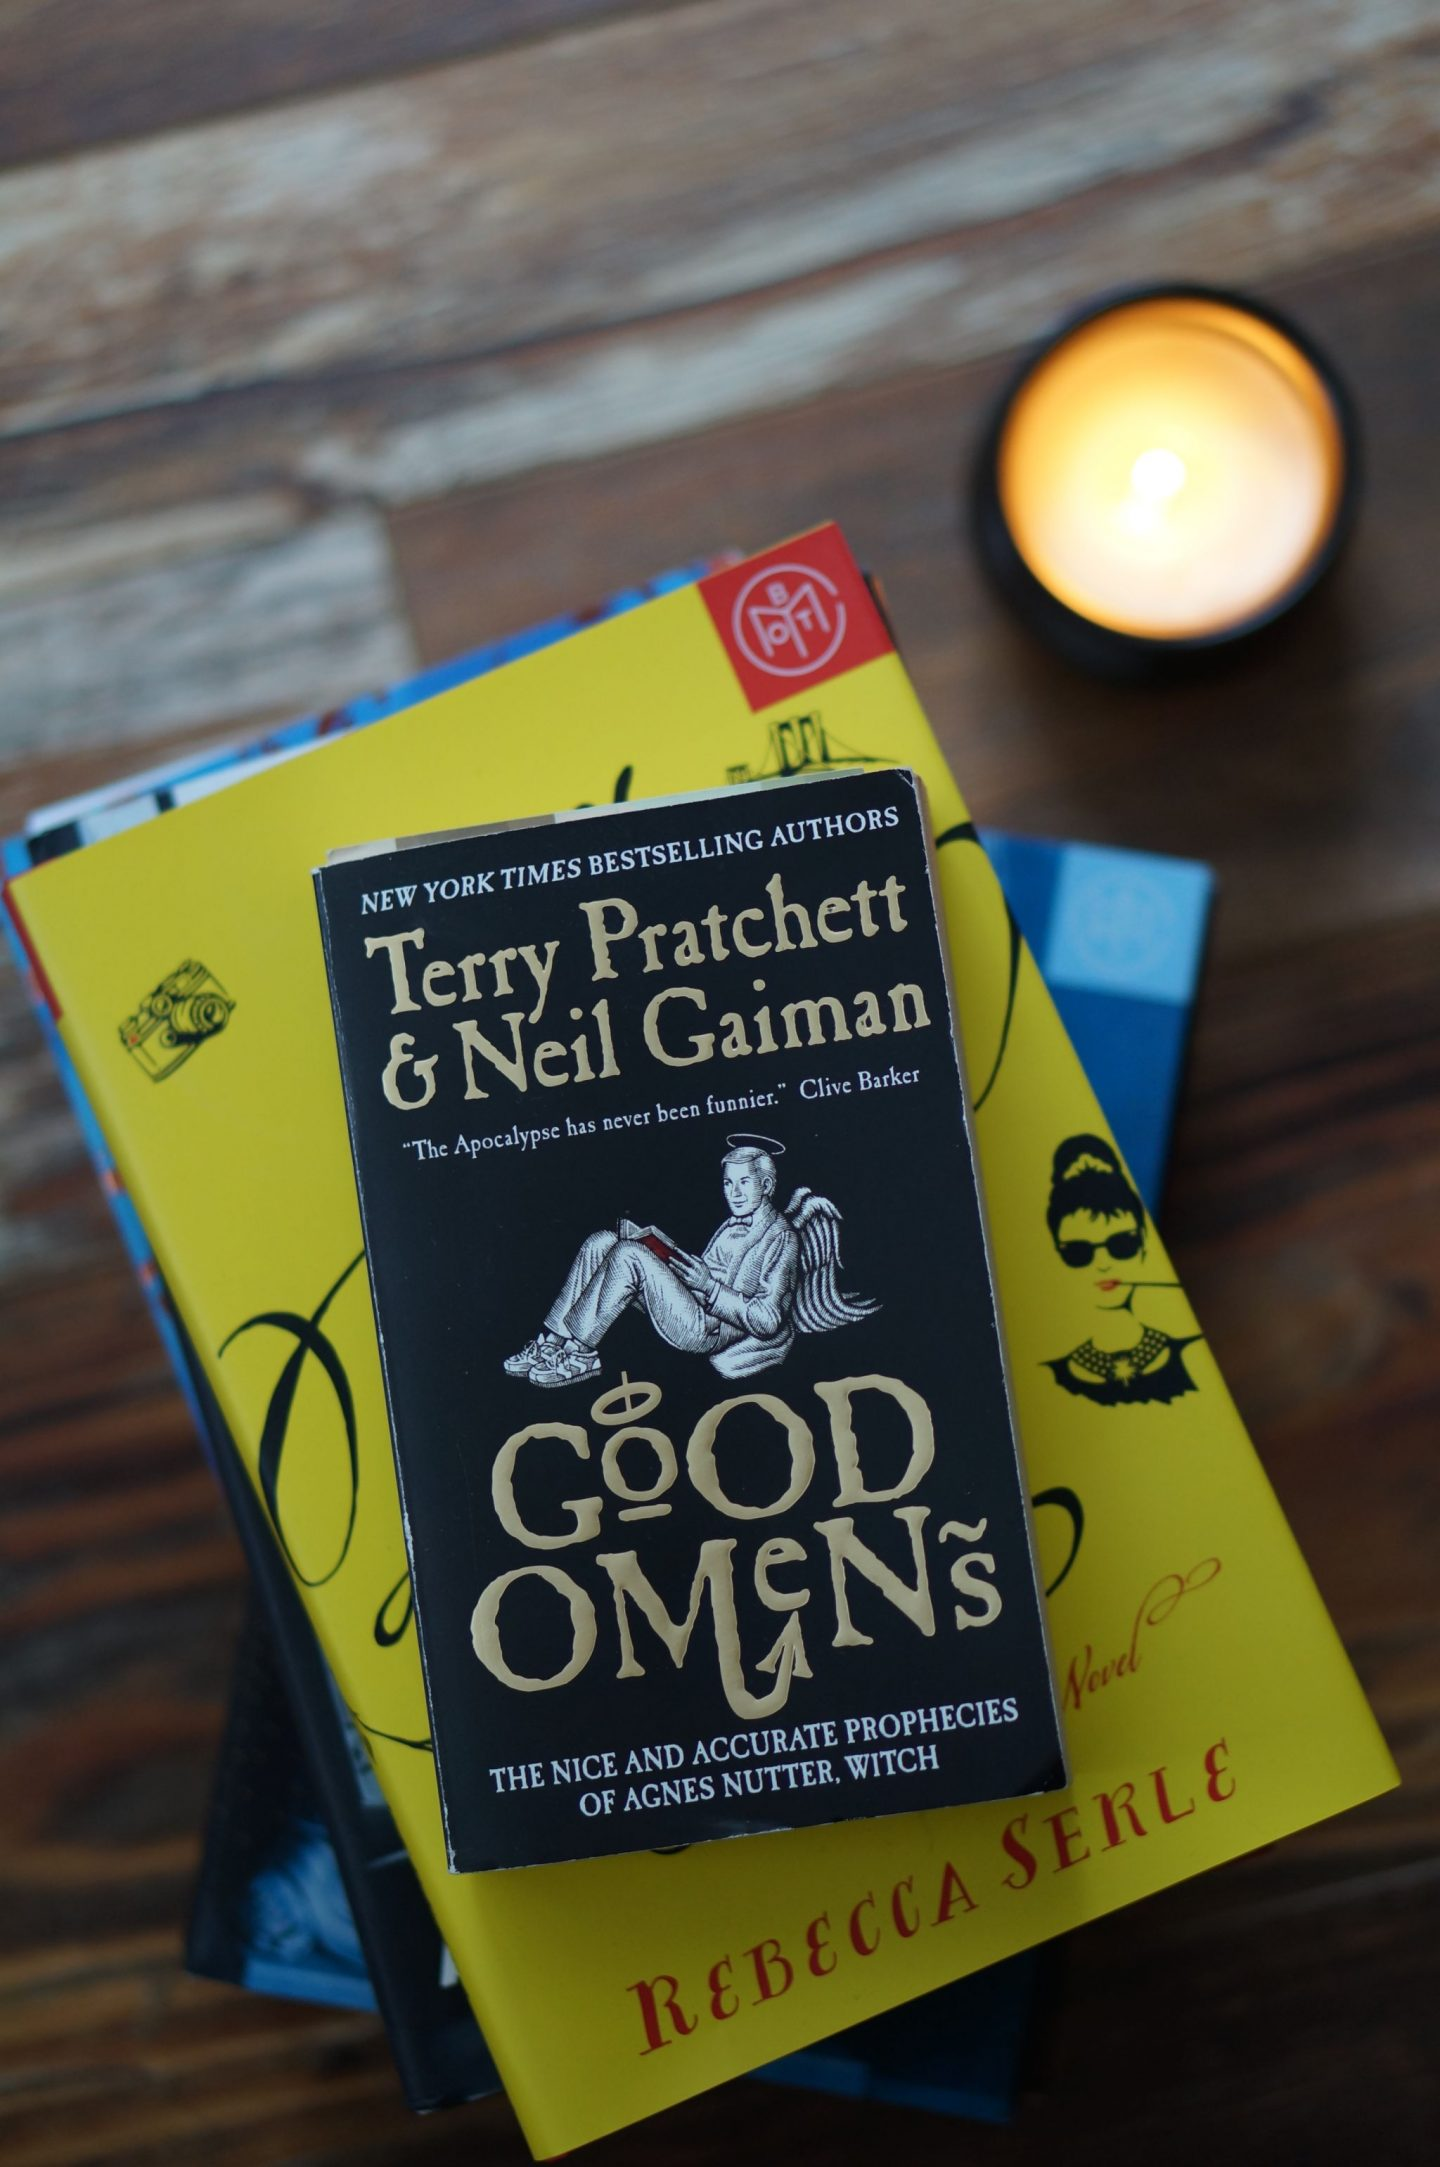 Popular North Carolina blogger Rebecca Lately shares her review of Good Omens by Neil Gaiman and Terry Pratchett. Click here for a great October read!